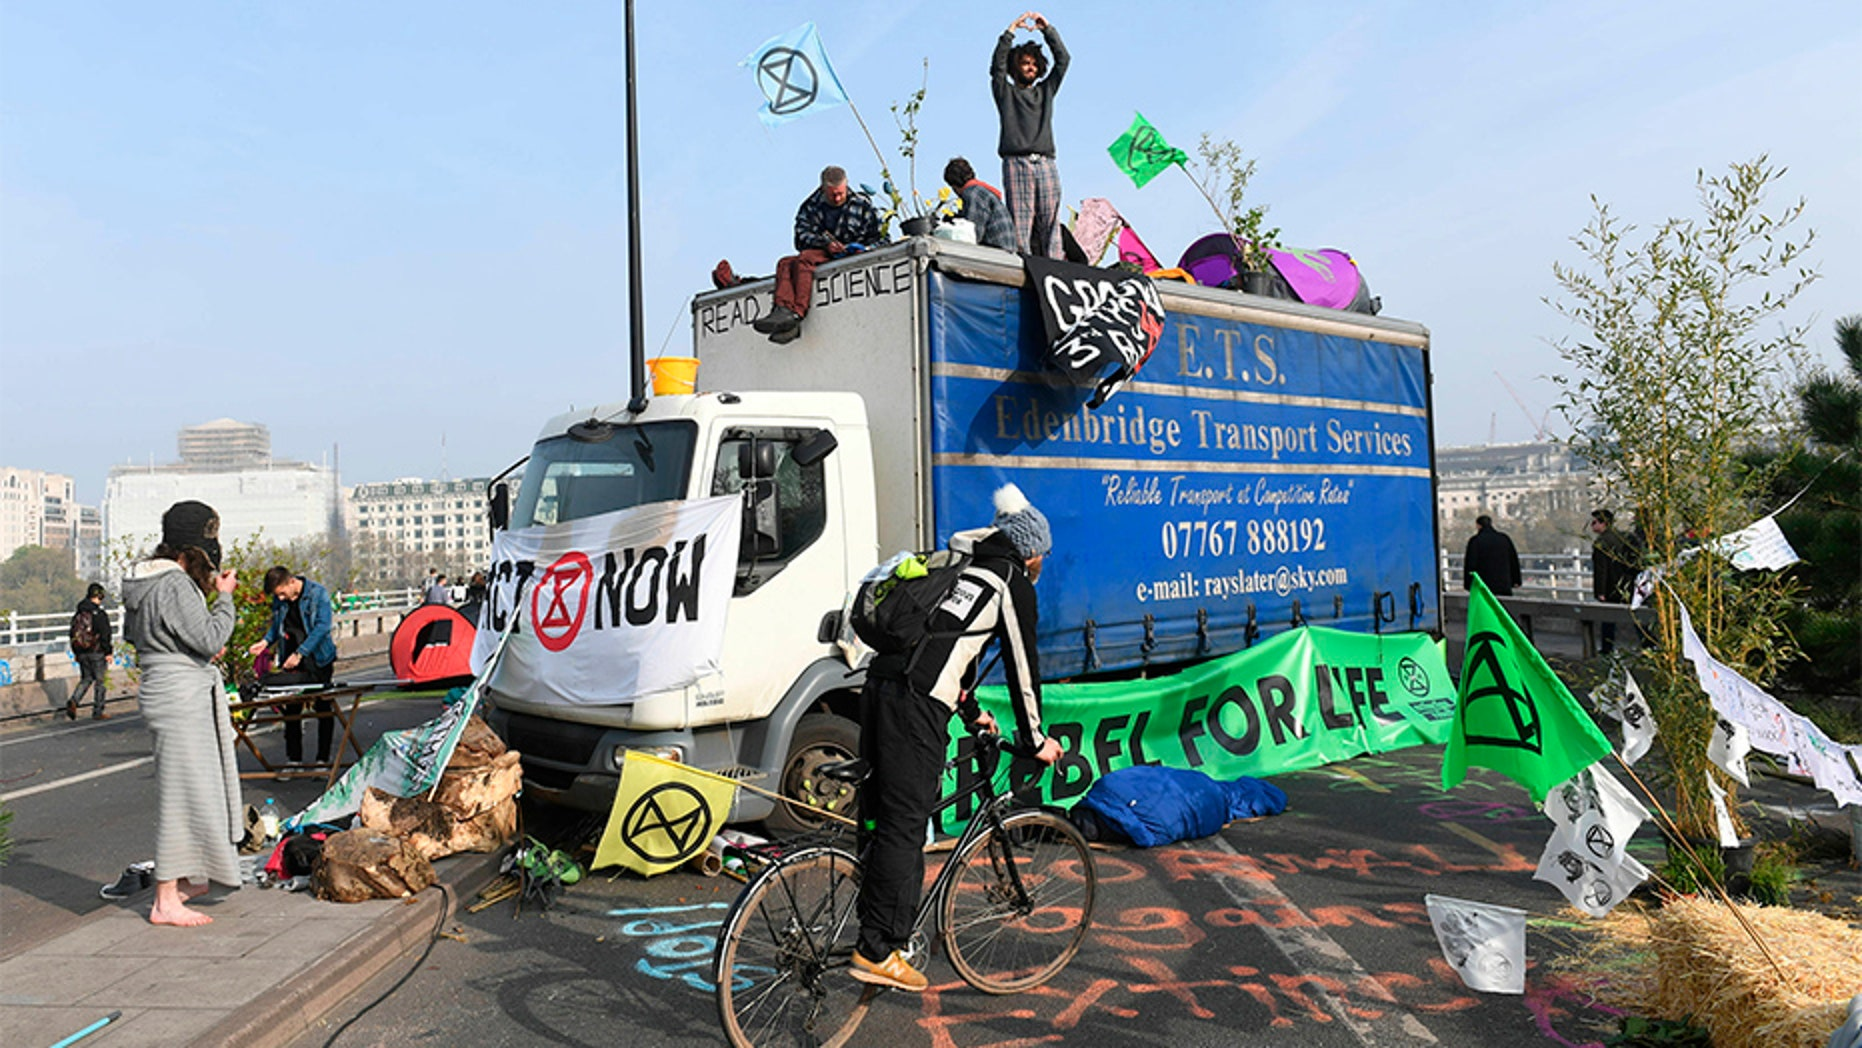 Extinction of the Rebellion Climate change protesters block Thursday's Waterloo Bridge, a major commuter road in London.